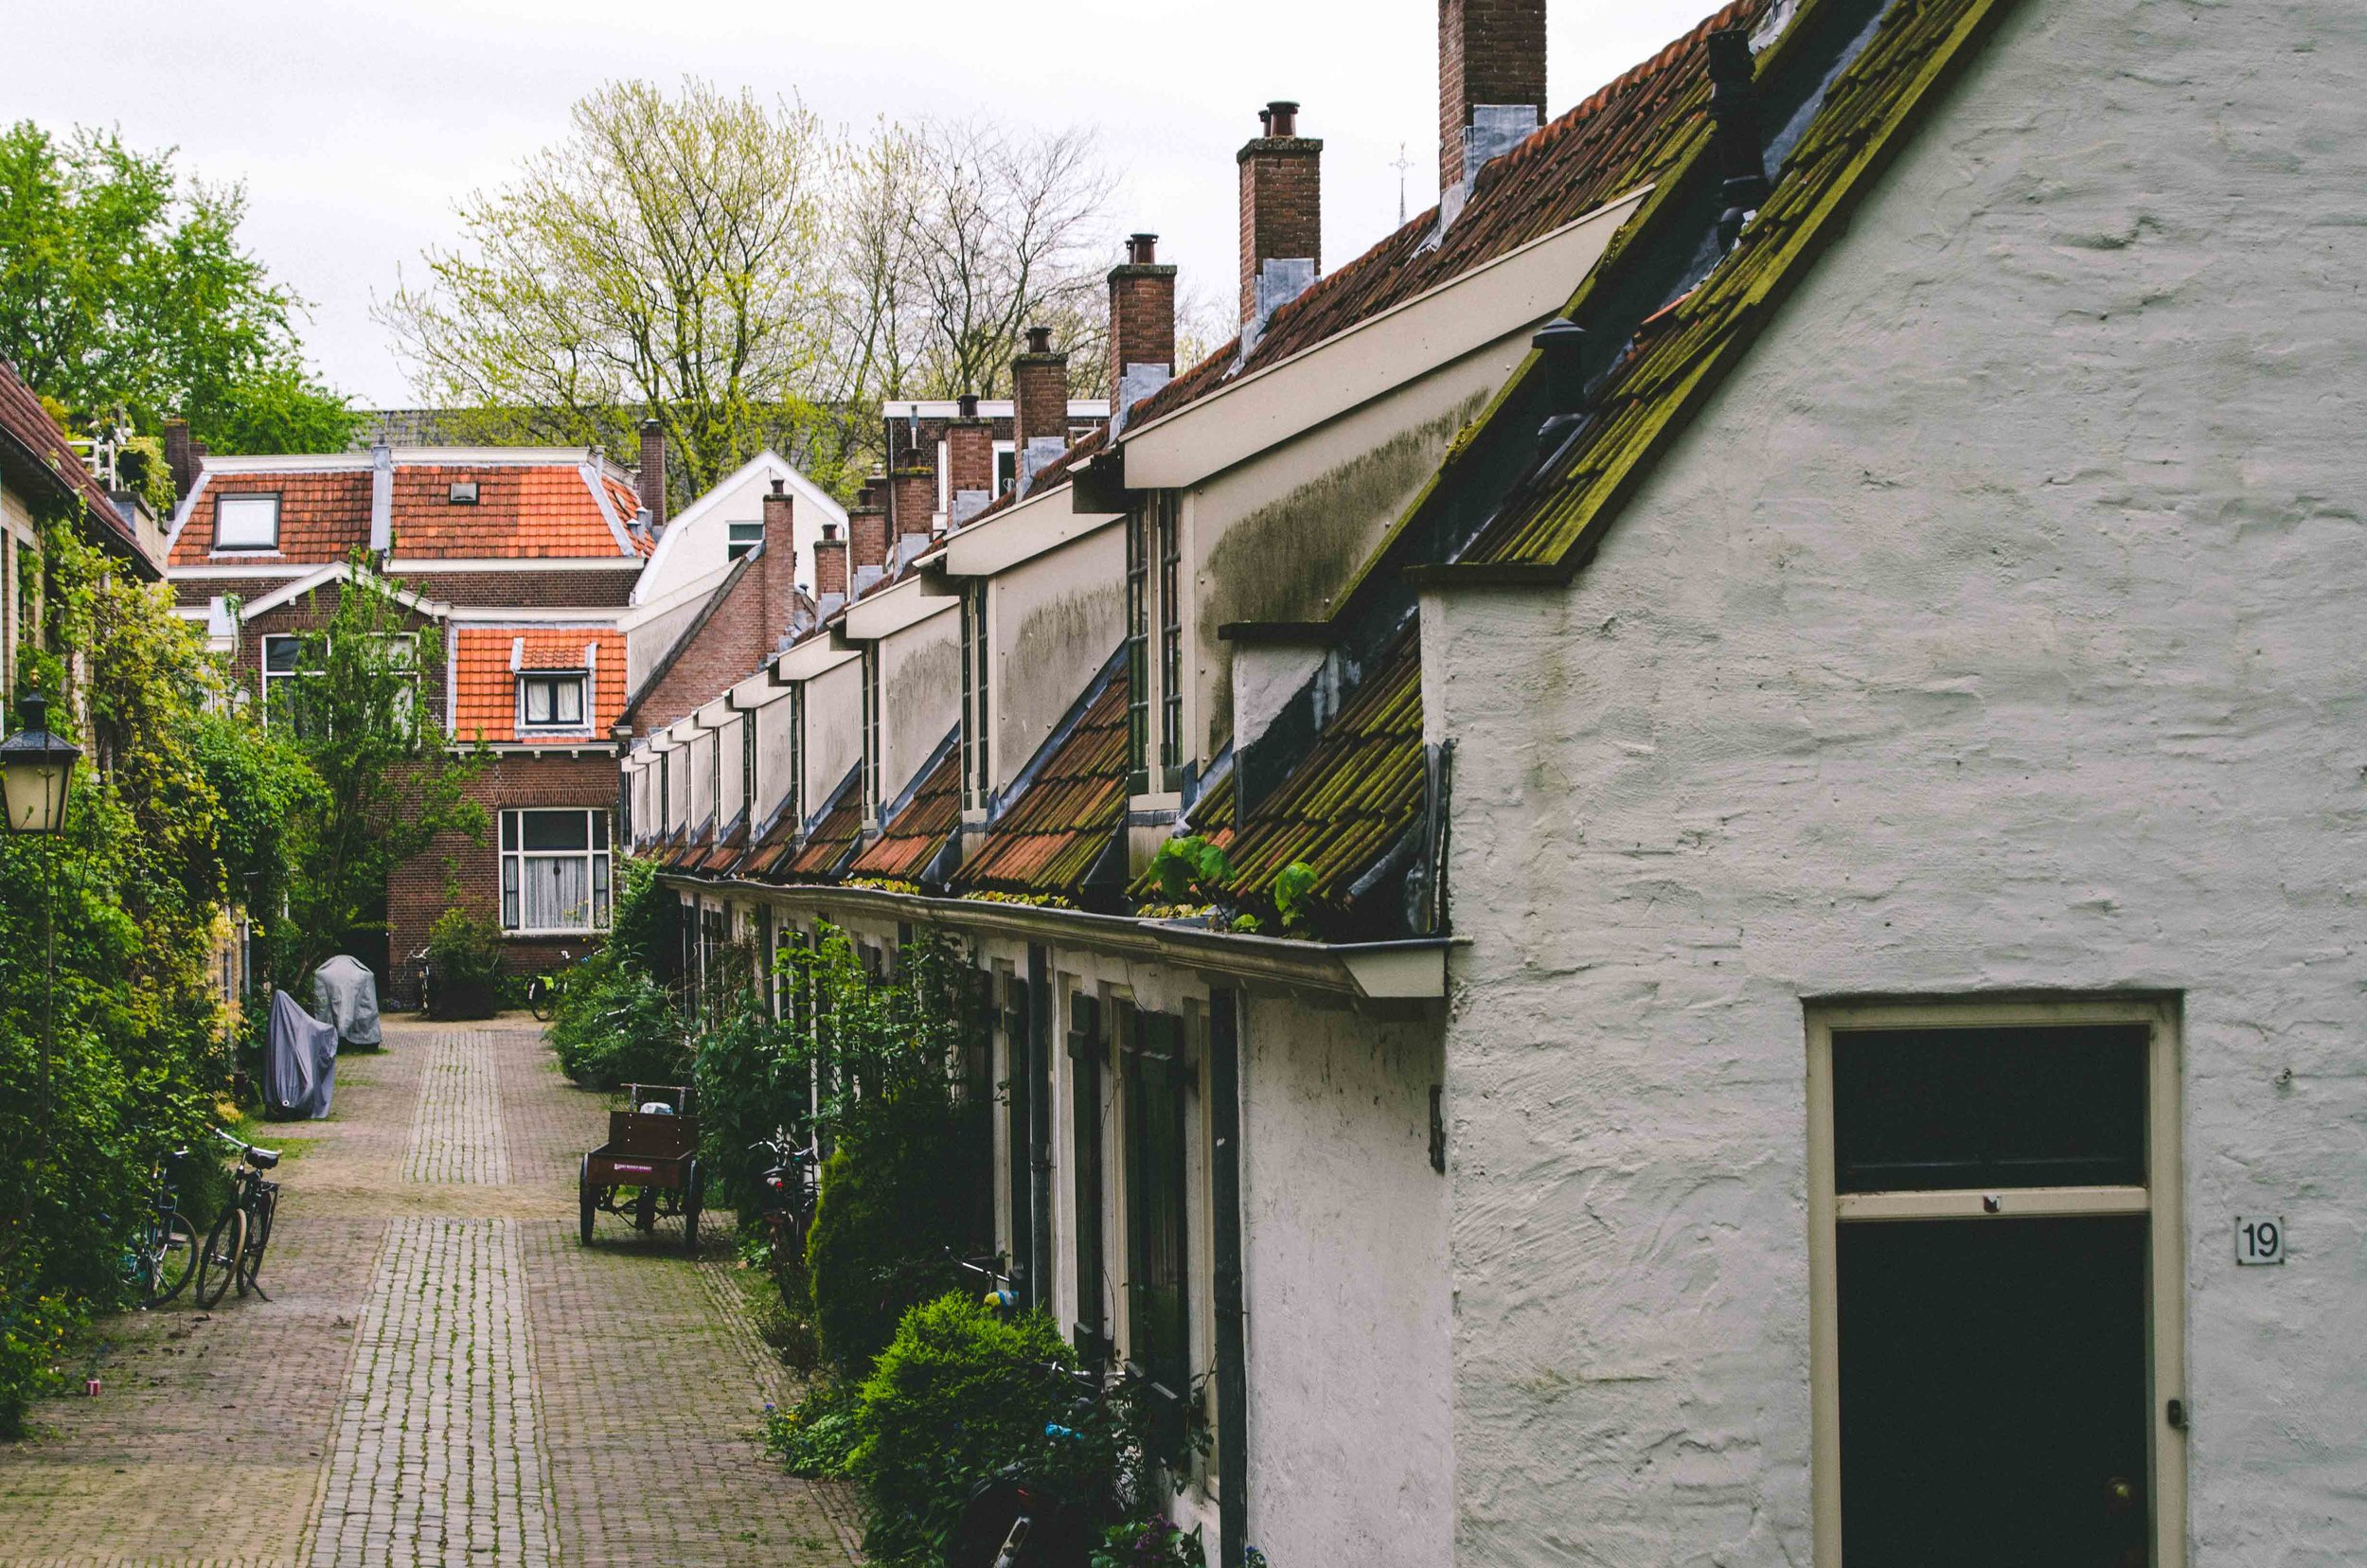 Near one of the canals is a lovely green space, bordered by residential housing with cobbled streets.